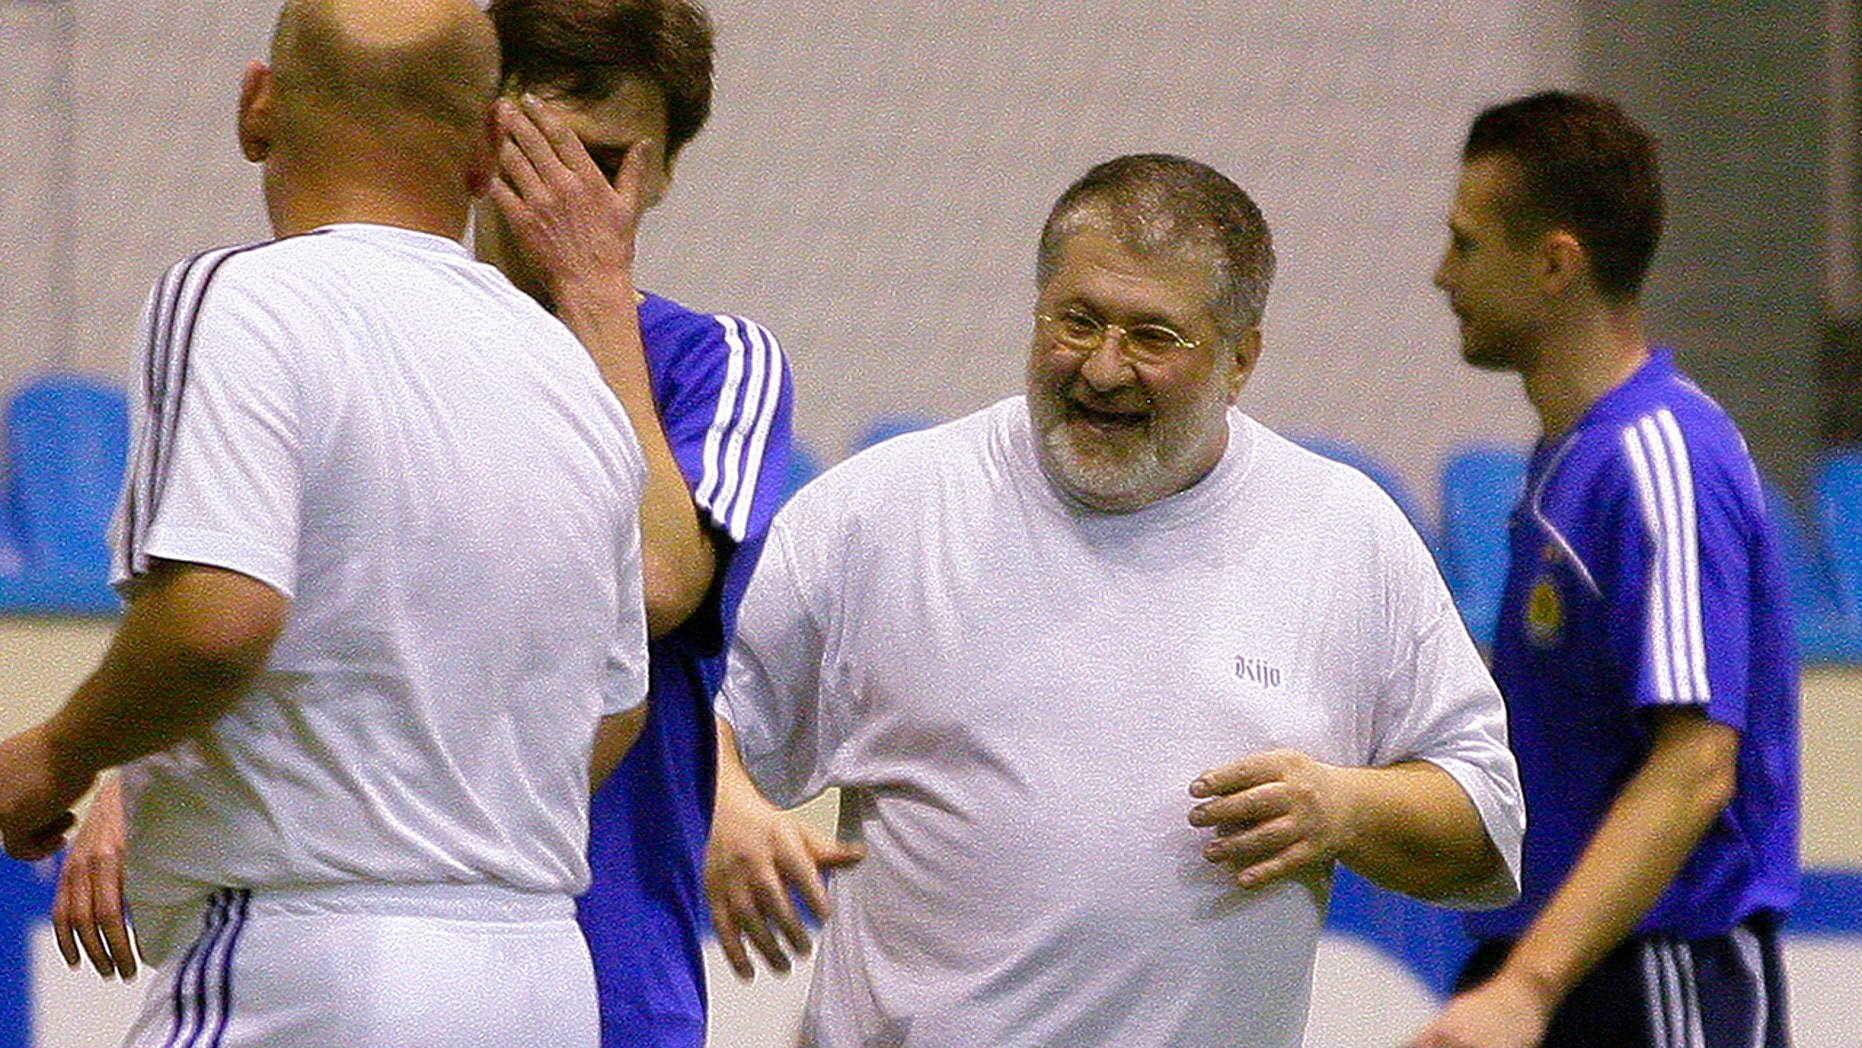 In this photo taken in Feb. 26, 2010, Ukrainian a self-exiled billionaire businessman Ihor Kolomoyskyi, center, plays soccer in Kiev, Ukraine. (AP Photo/Andriy Lukatsky, File)